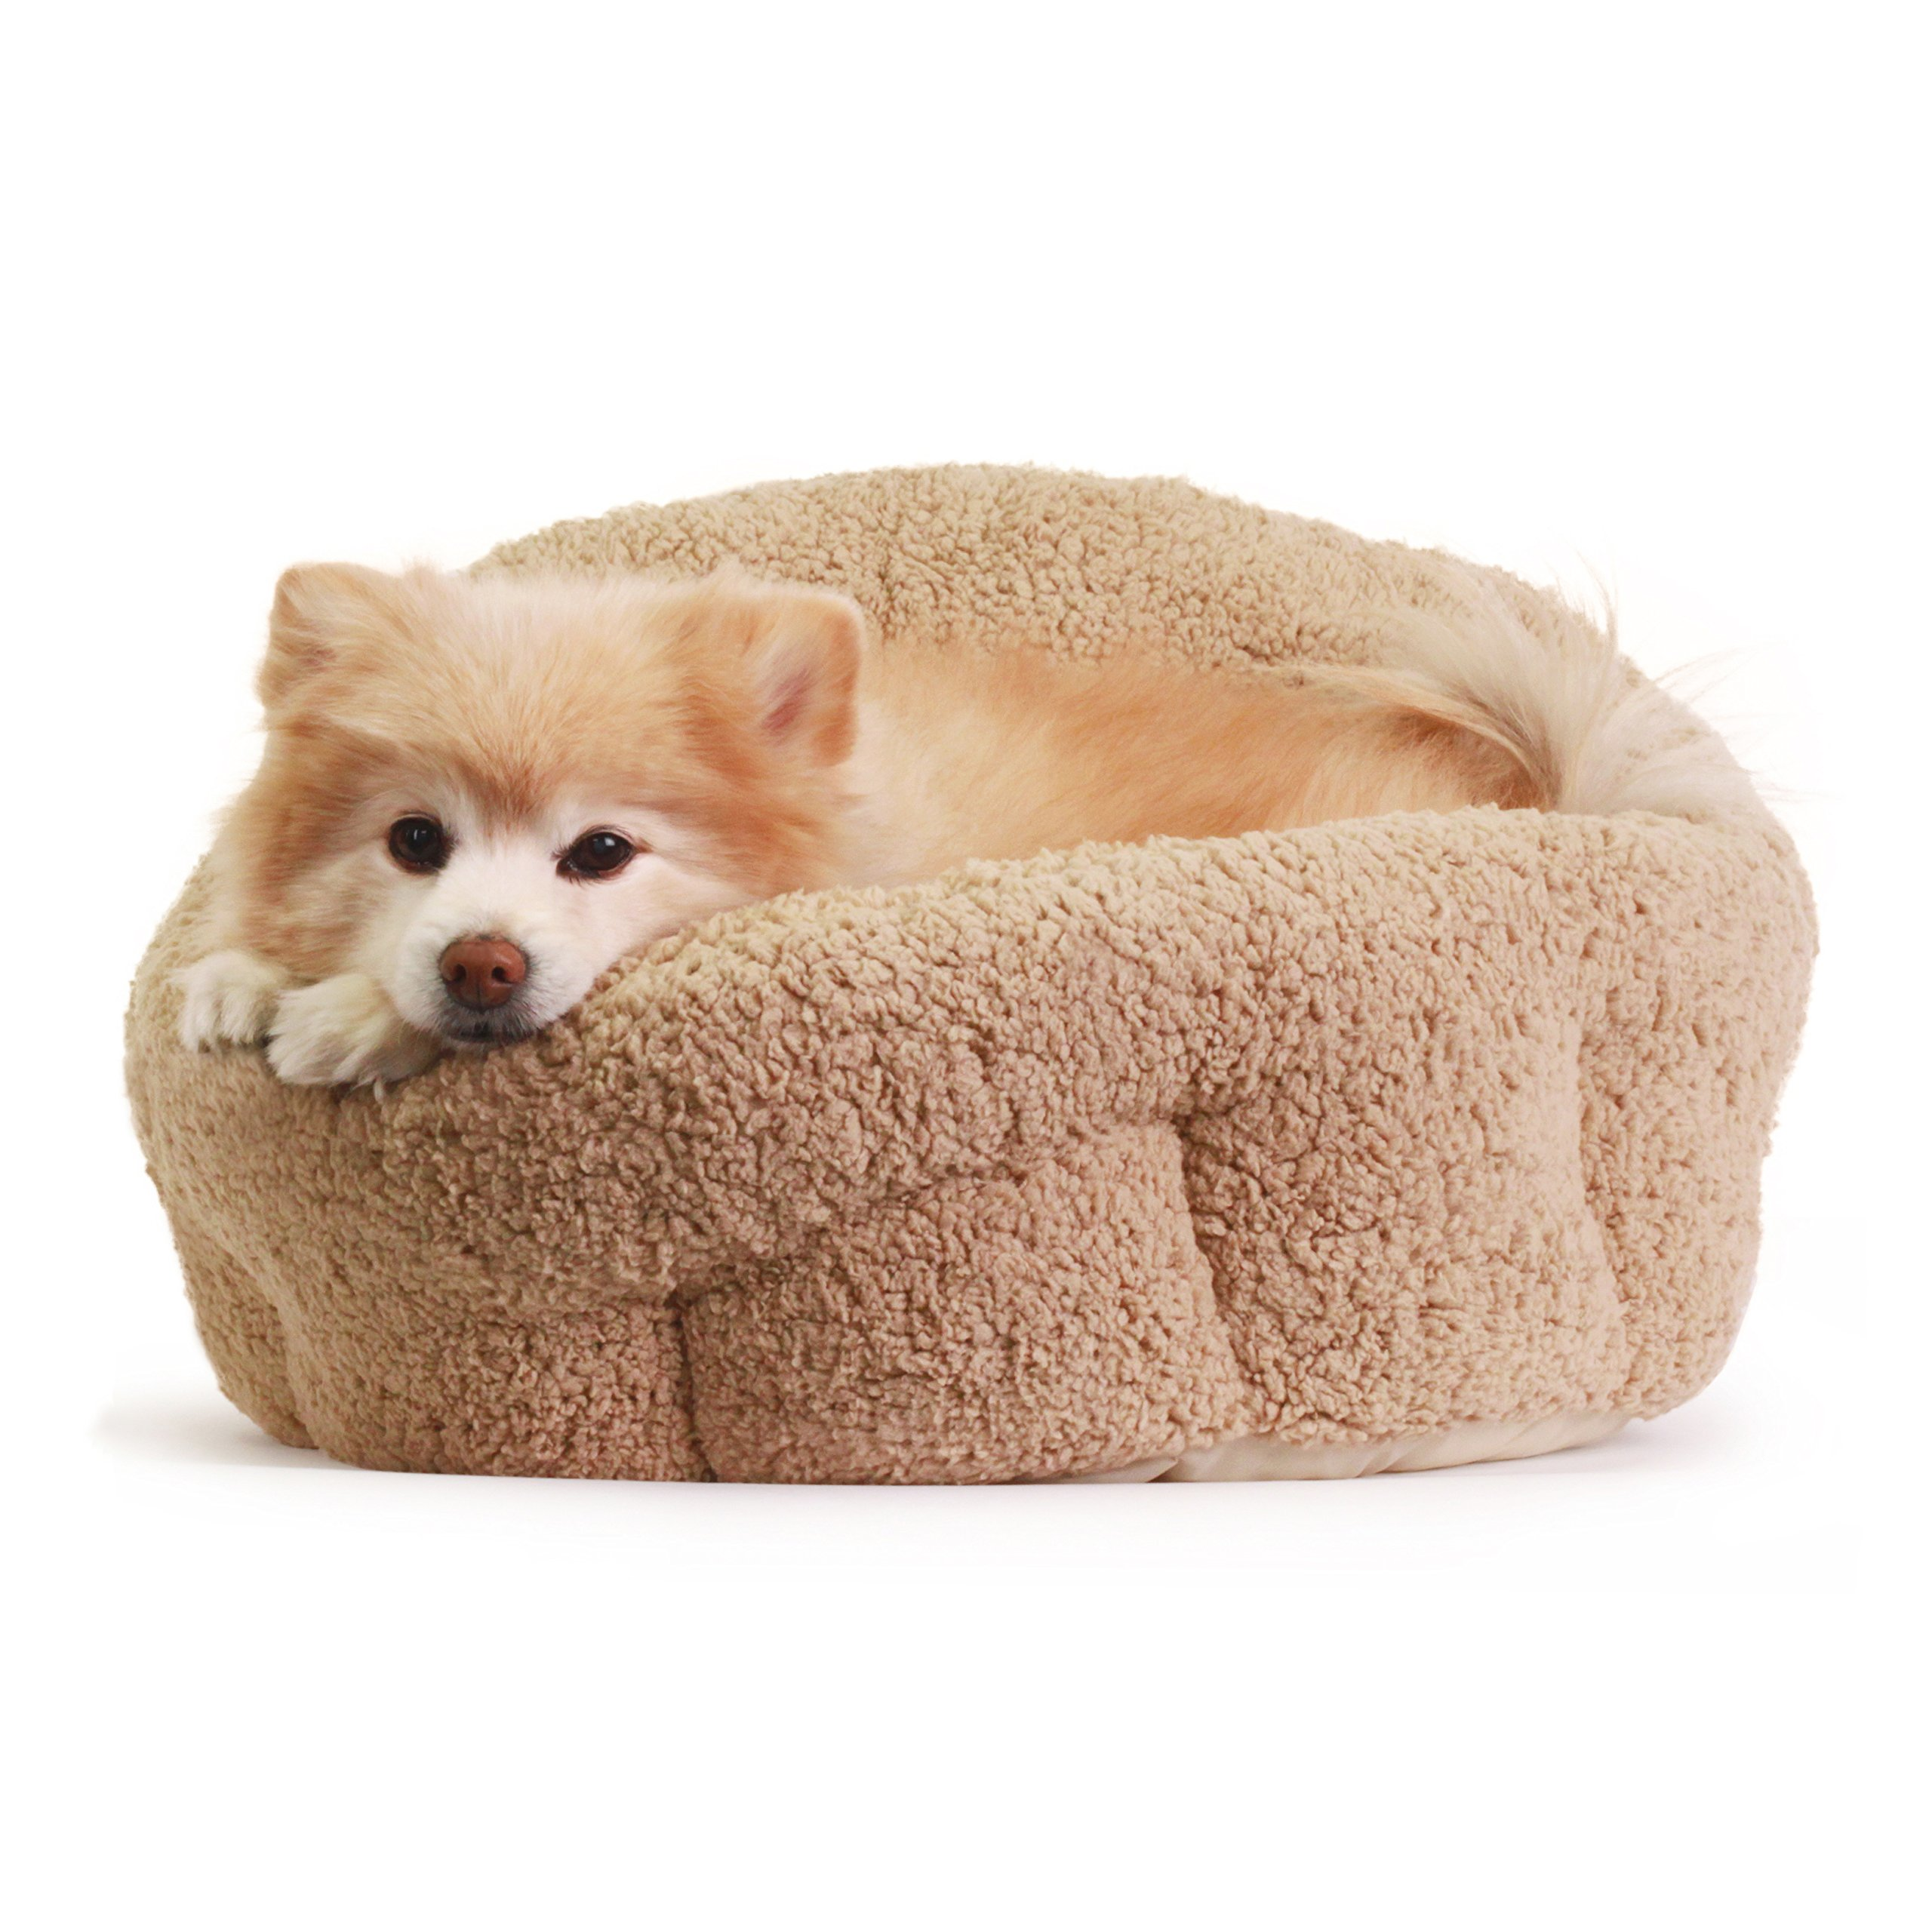 Best Friends by Sheri OrthoComfort Deep Dish Cuddler (20x20x12'') - Self-Warming Cat and Dog Bed Cushion for Joint-Relief and Improved Sleep - Machine Washable, Waterproof Bottom - For Pets Up to 25lbs by Best Friends by Sheri